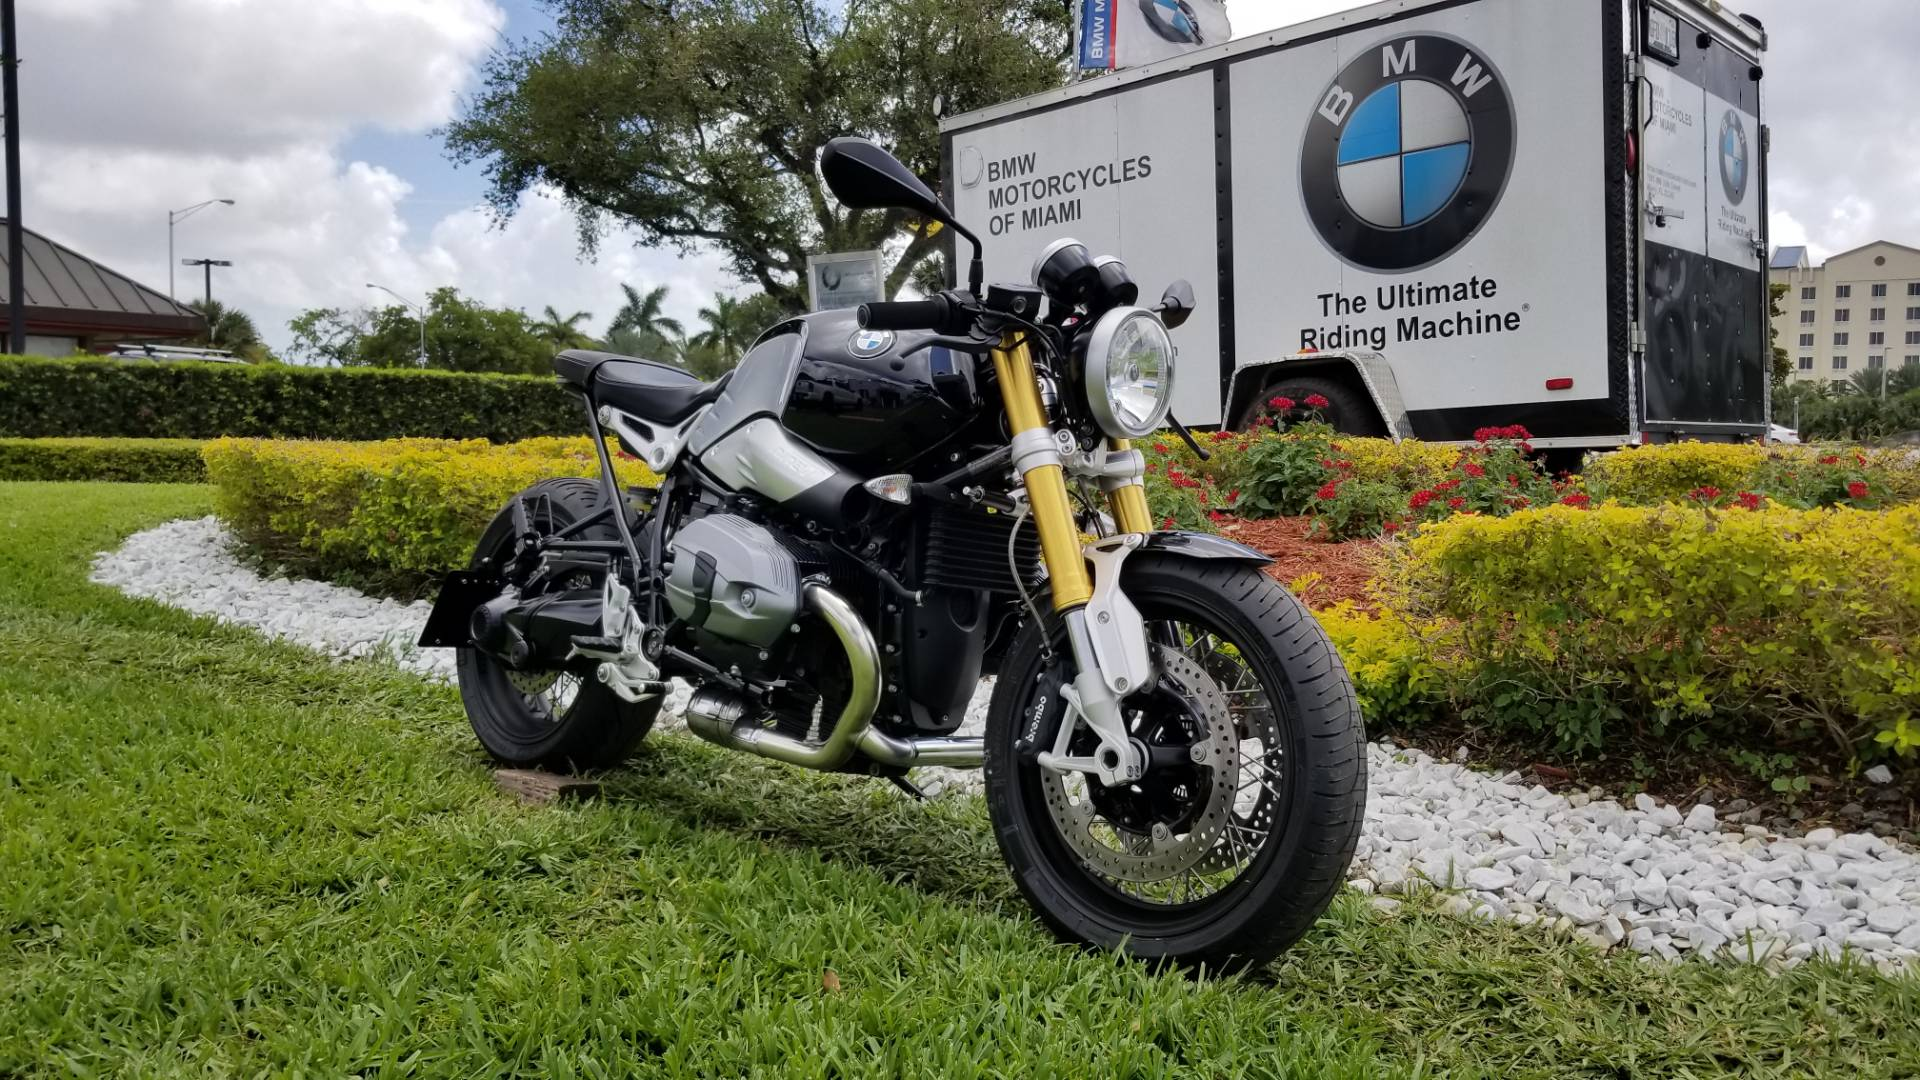 Used 2017 BMW R nine T For Sale, Pre owned BMW R nineT For Sale, BMW Motorcycle RnineT, BMW Motorcycles of Miami, Motorcycles of Miami, Motorcycles Miami - Photo 1